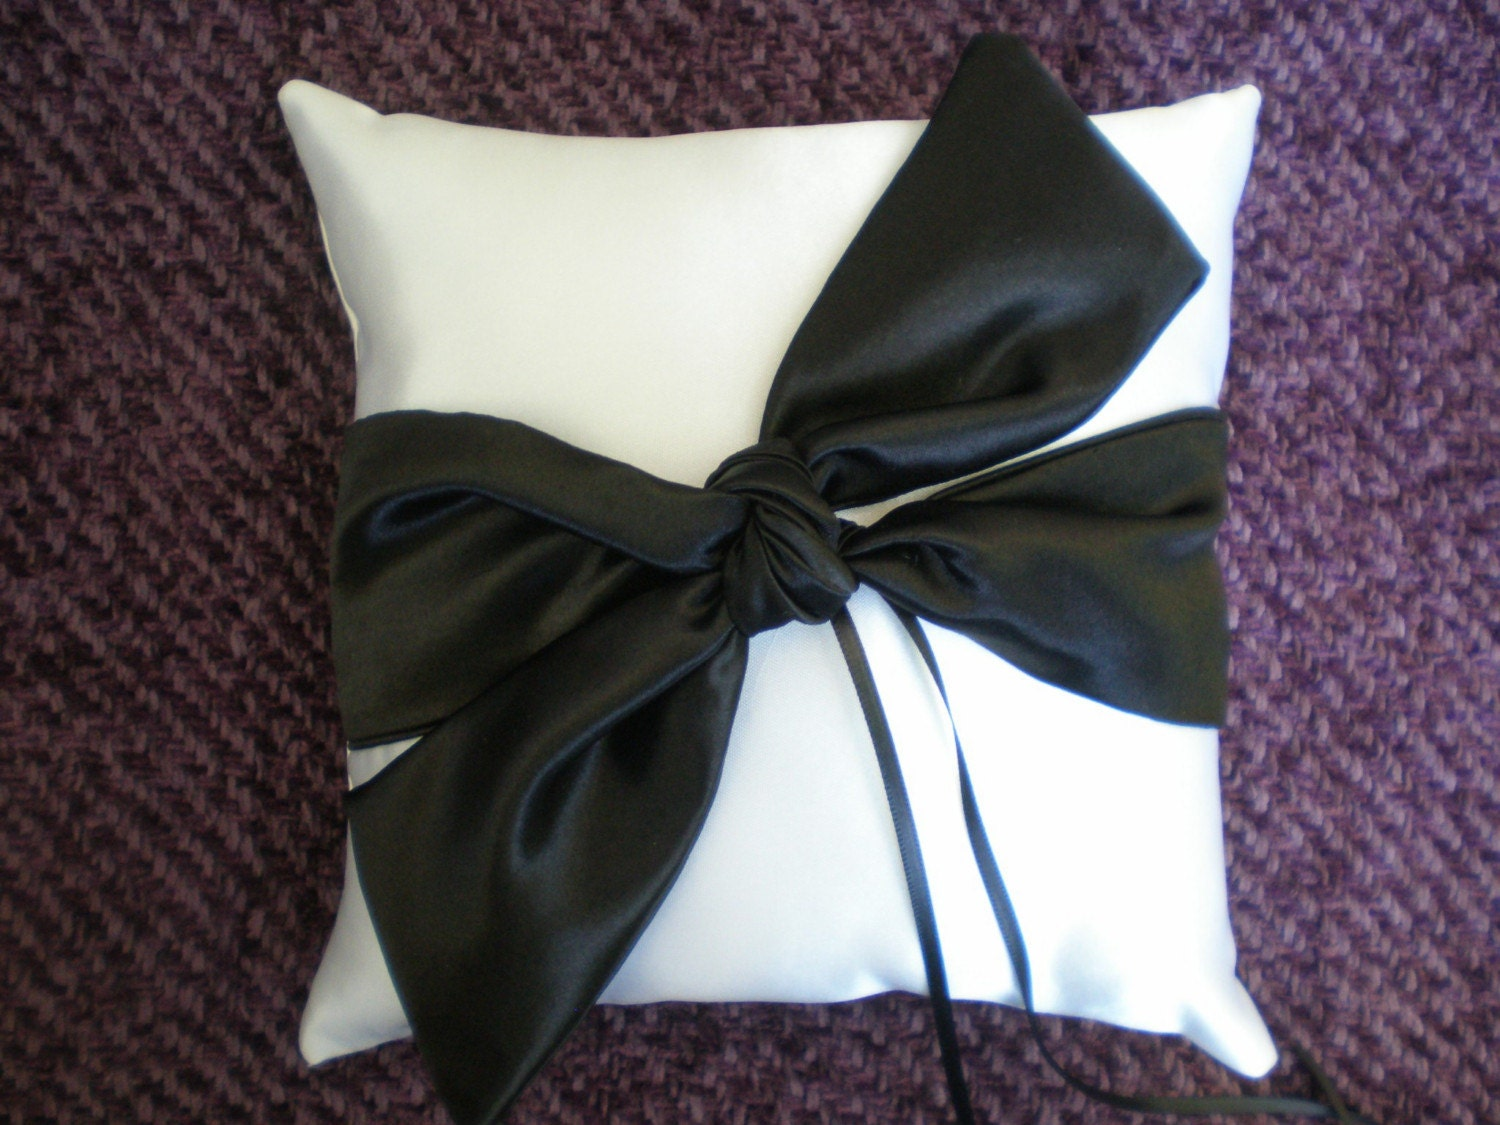 White Satin Wedding Ring Bearer Pillow w/ Black Knot